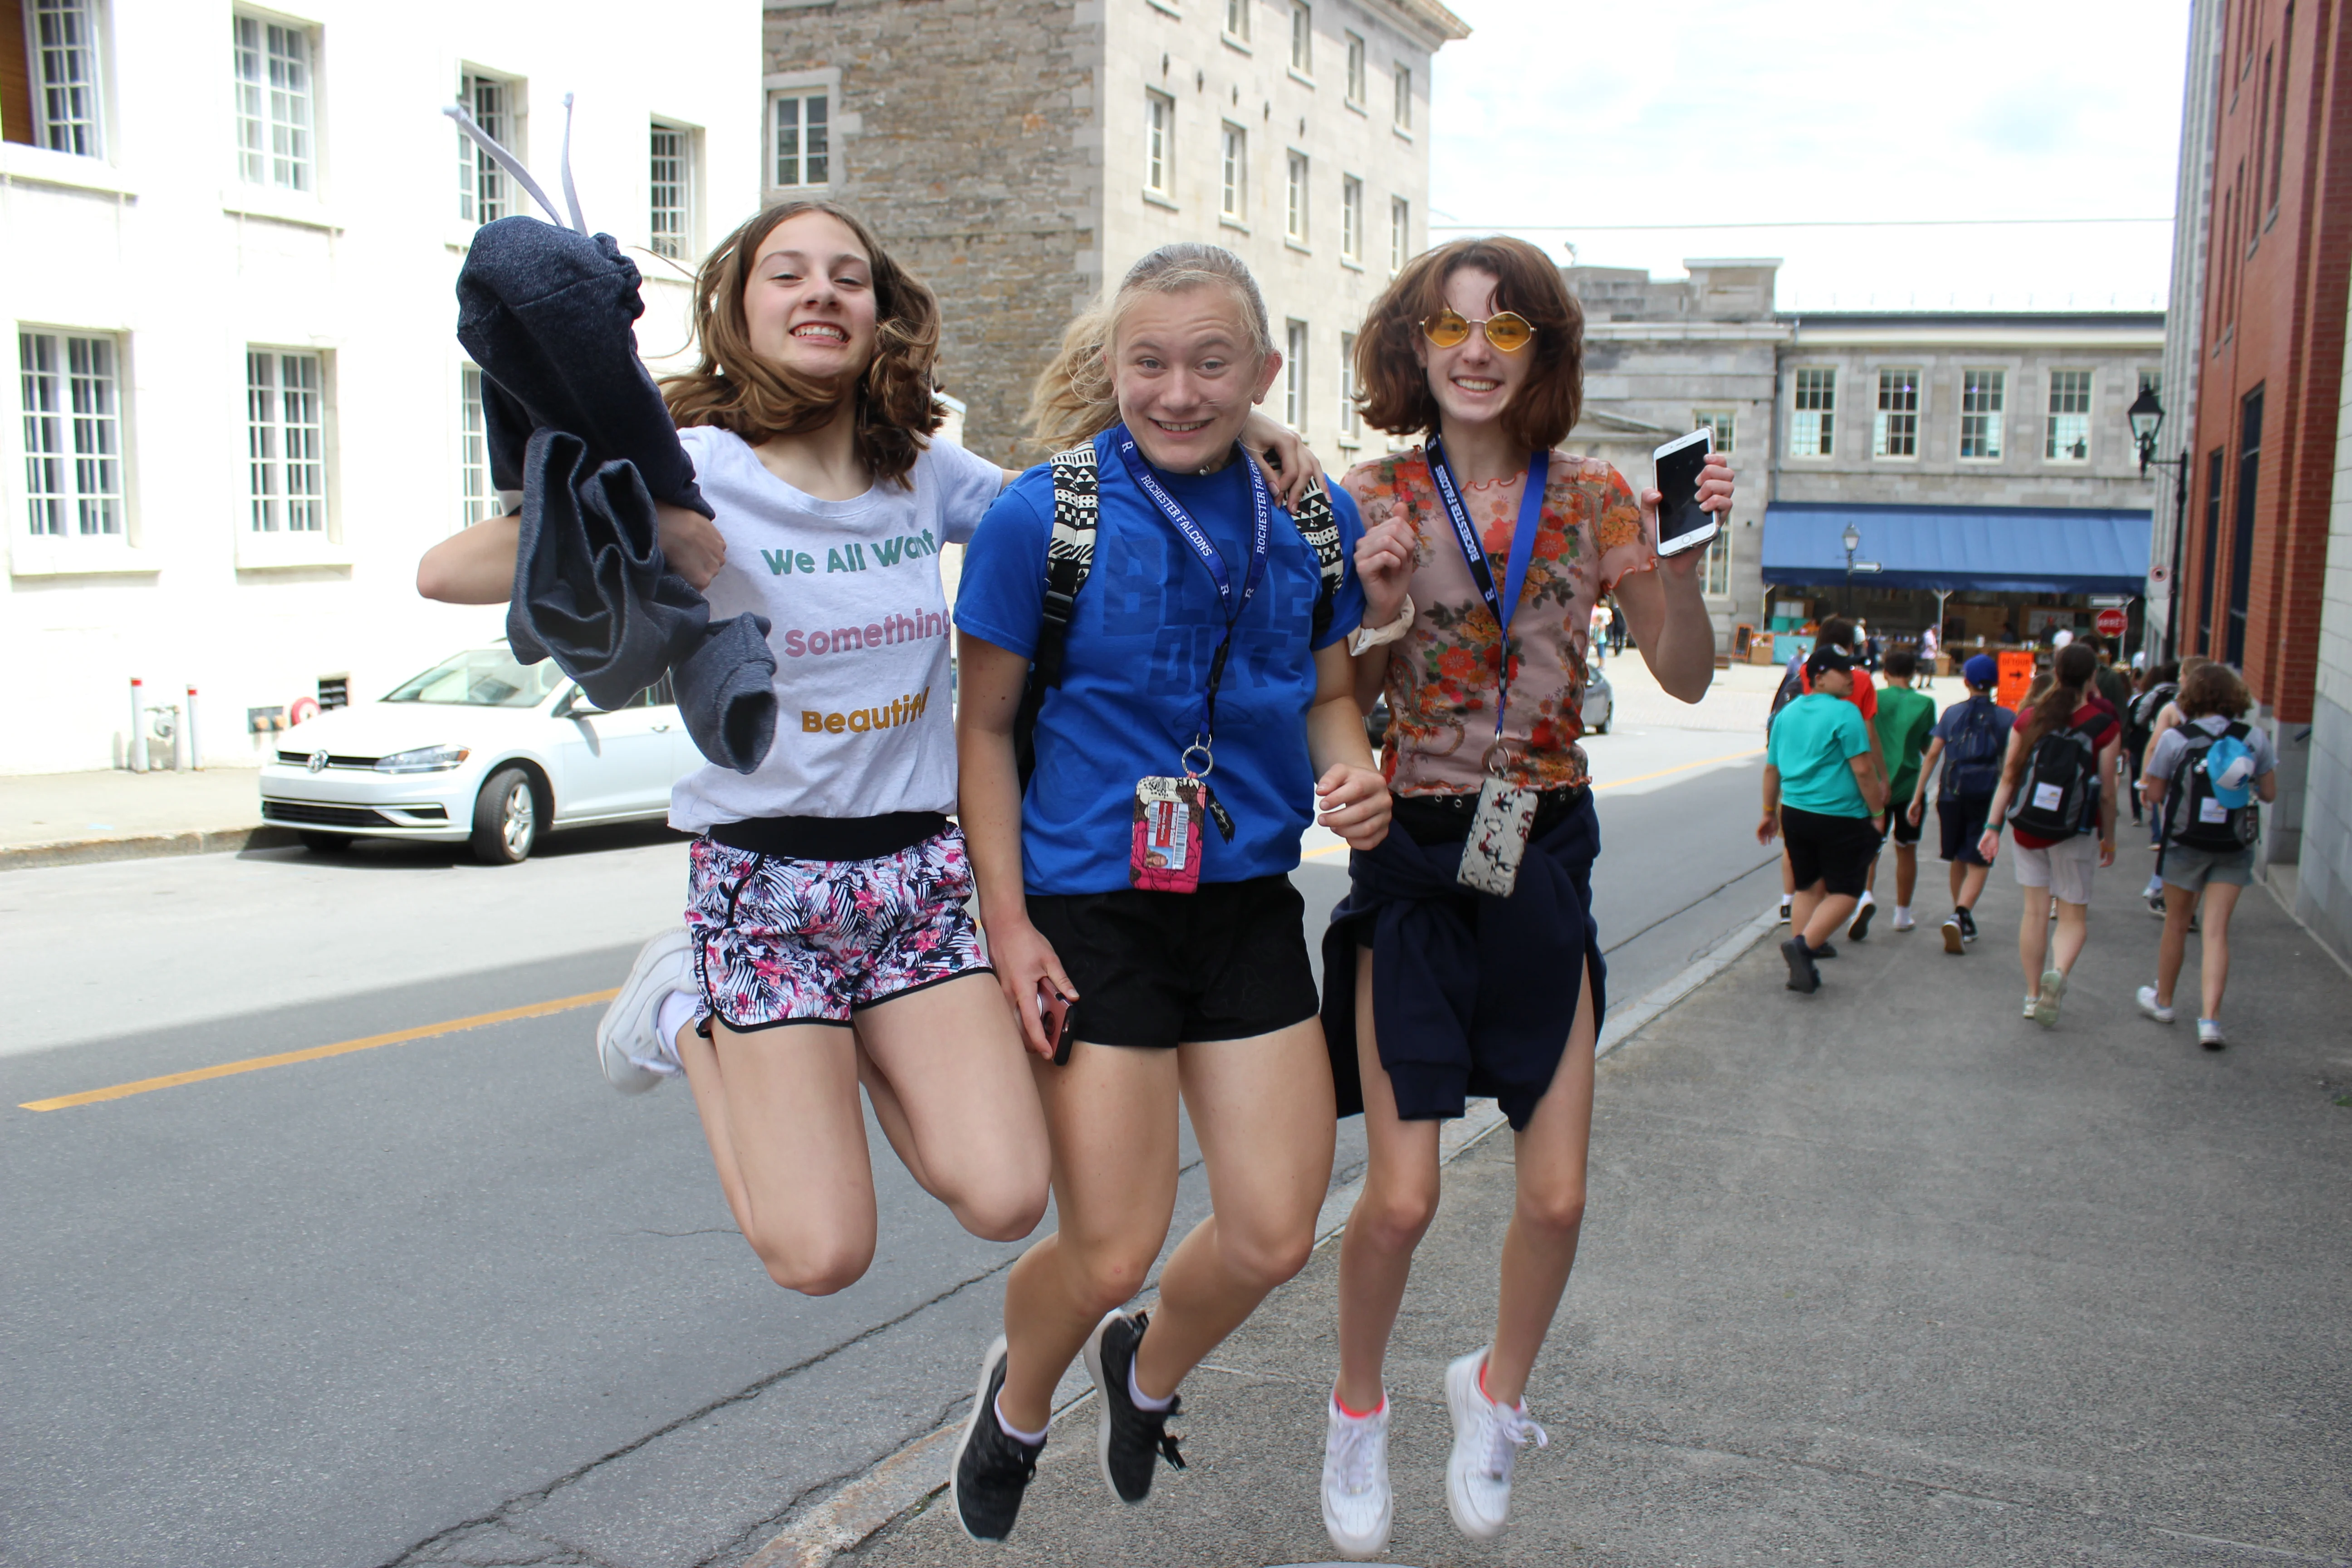 Students jumping with joy in Montreal.